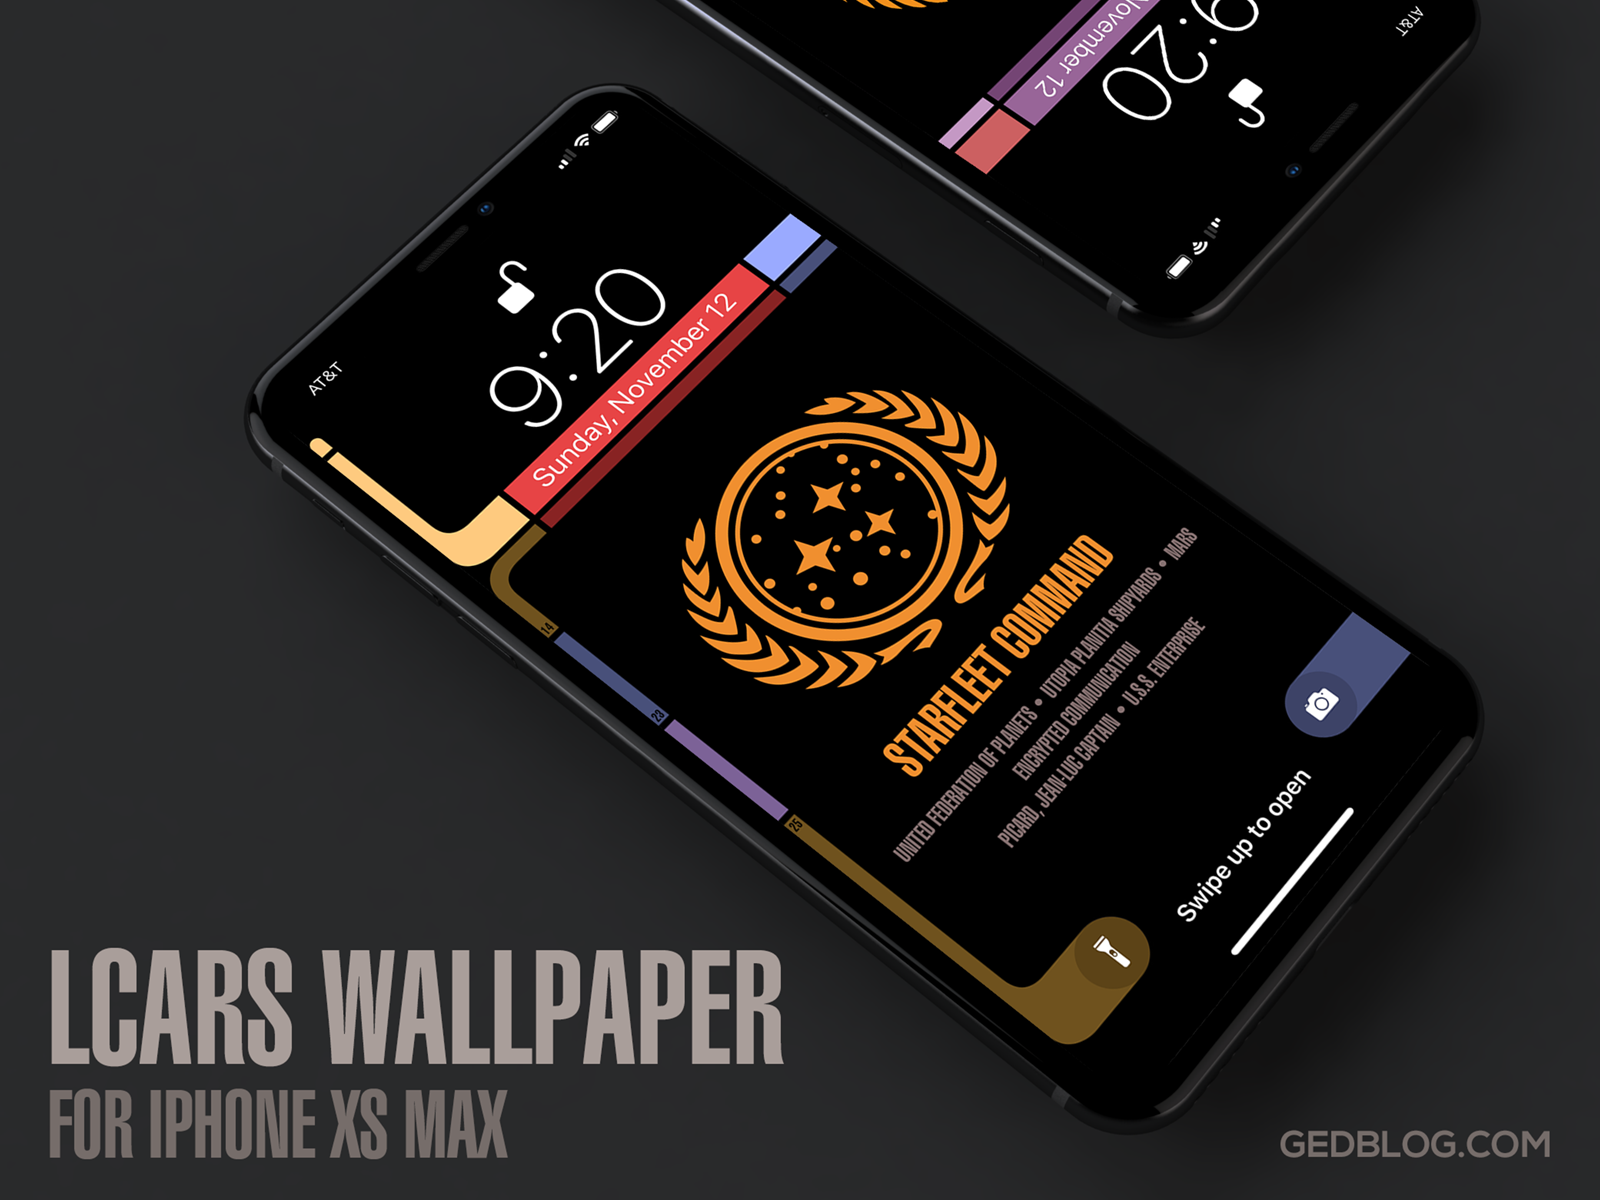 Pacman Iphone 6 Wallpaper Hd: Star Trek TNG LCARS Wallpaper For IPhone Xs Max By Gedeon